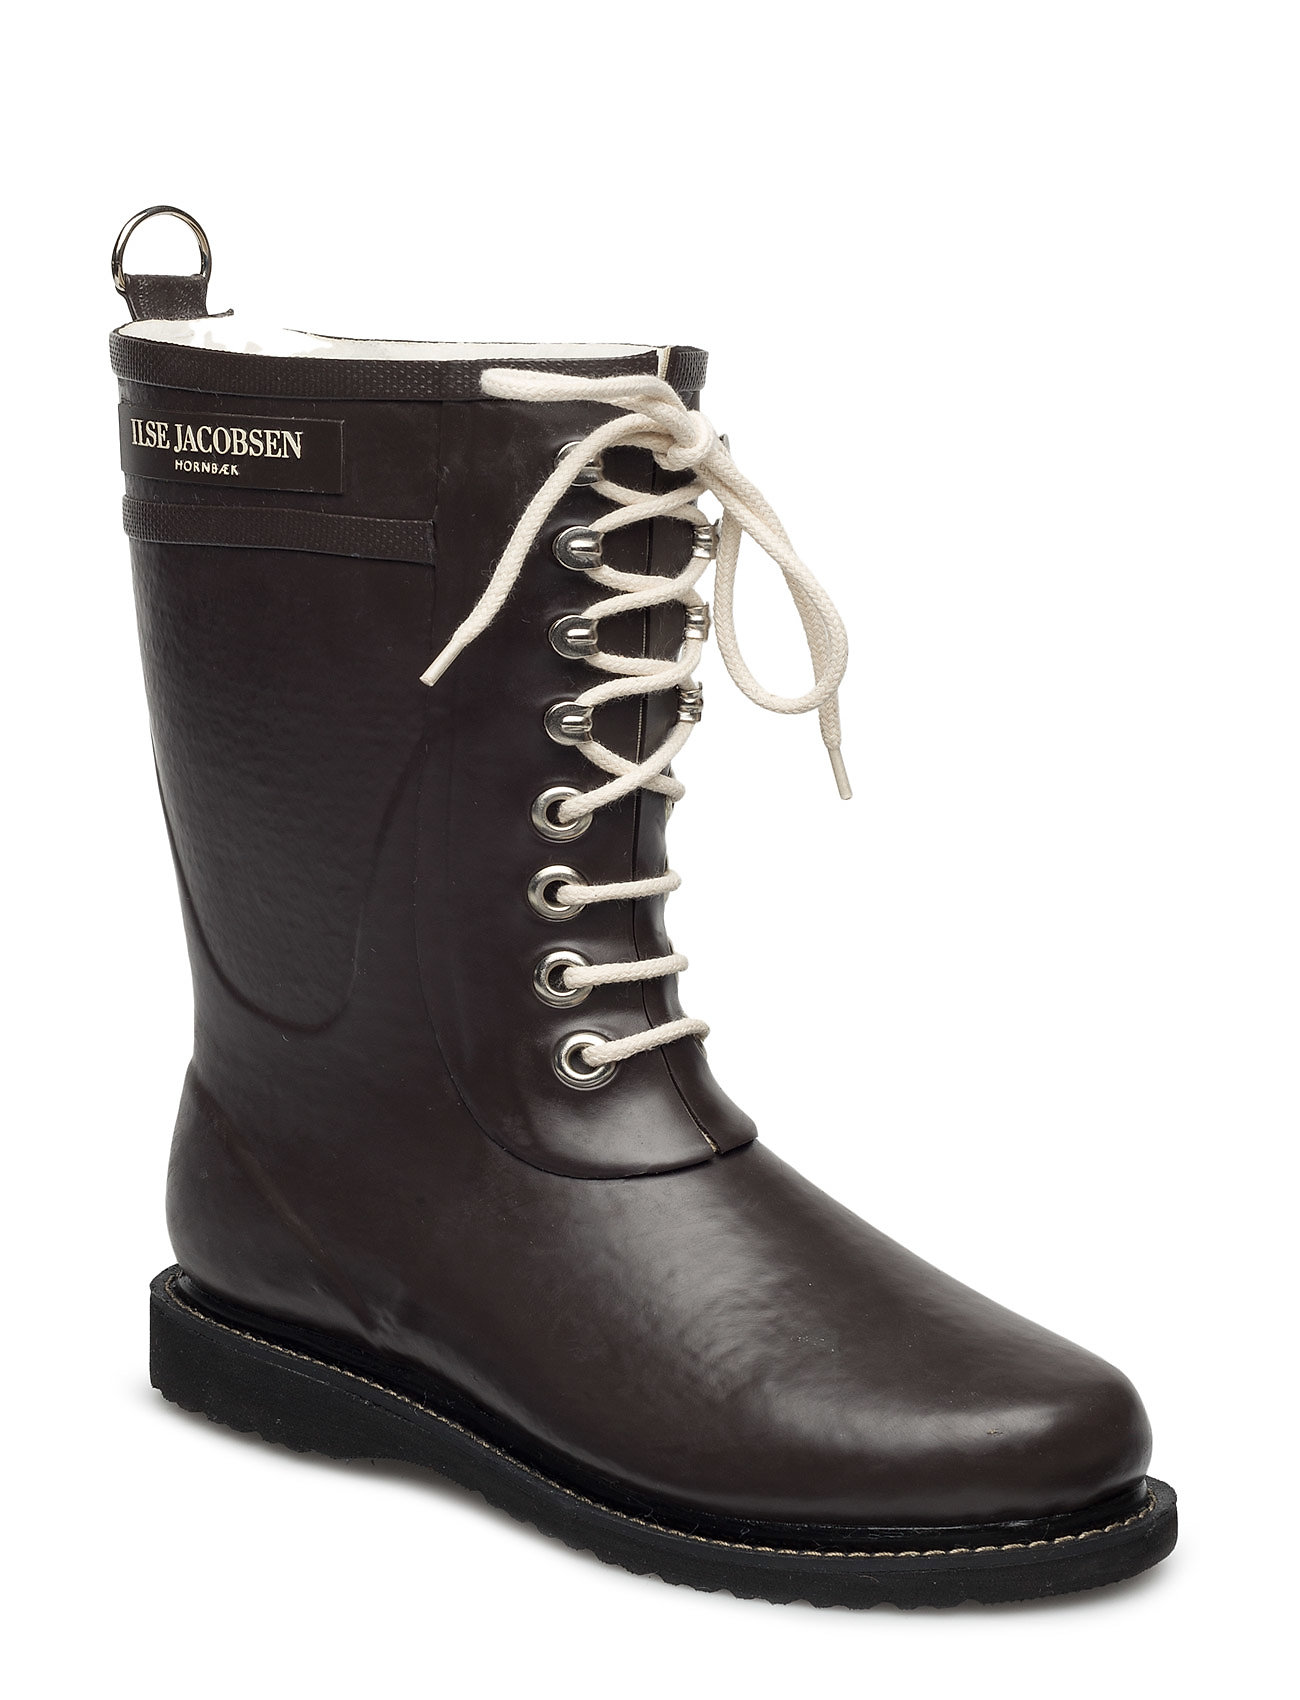 Ilse Jacobsen 3/4 RUBBERBOOT - BROWN